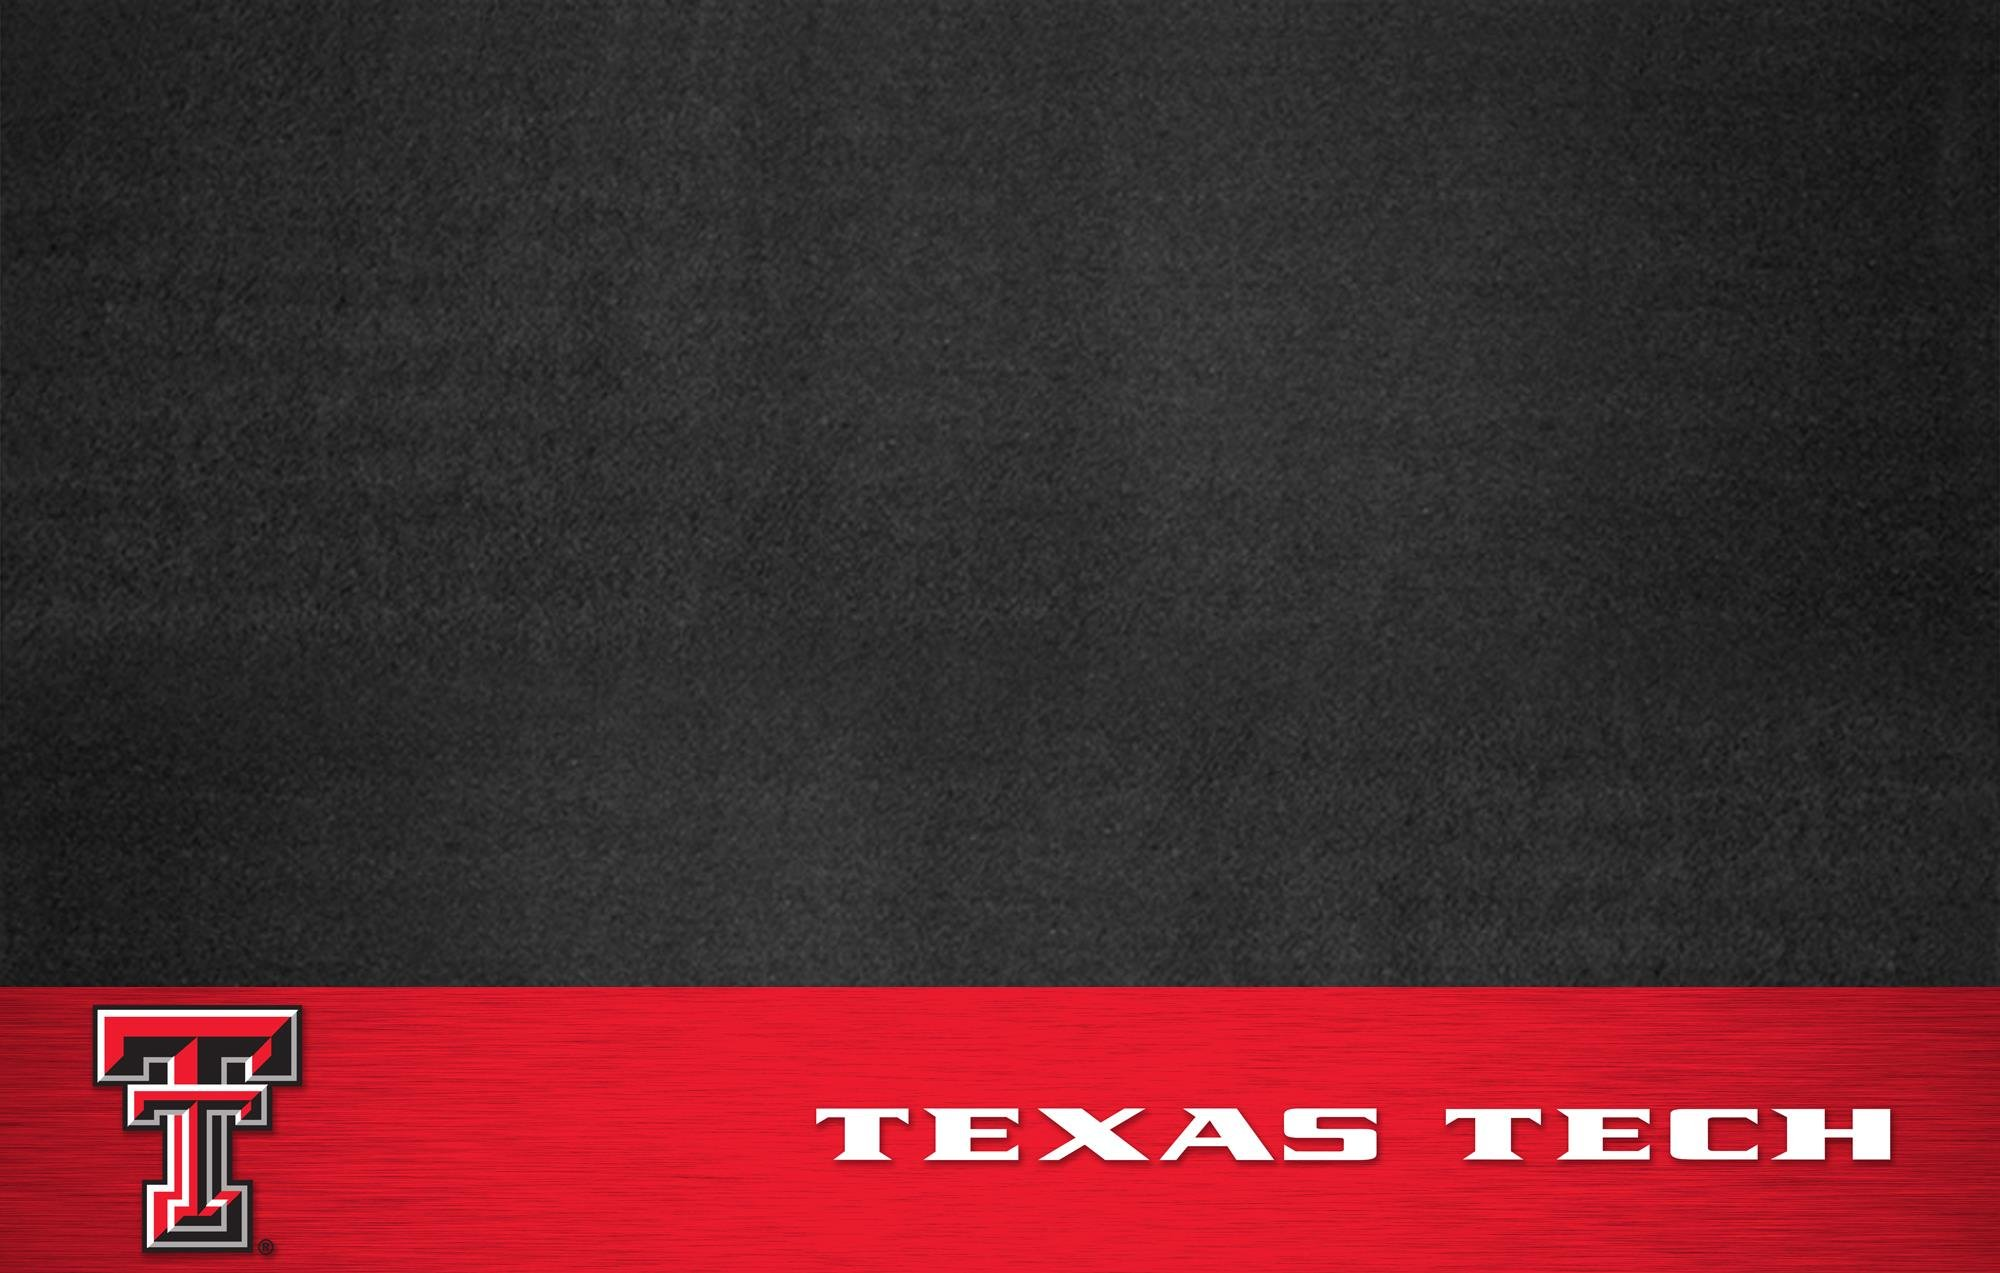 TEXAS TECH RED RAIDERS college football texastech wallpaper background 2000x1273